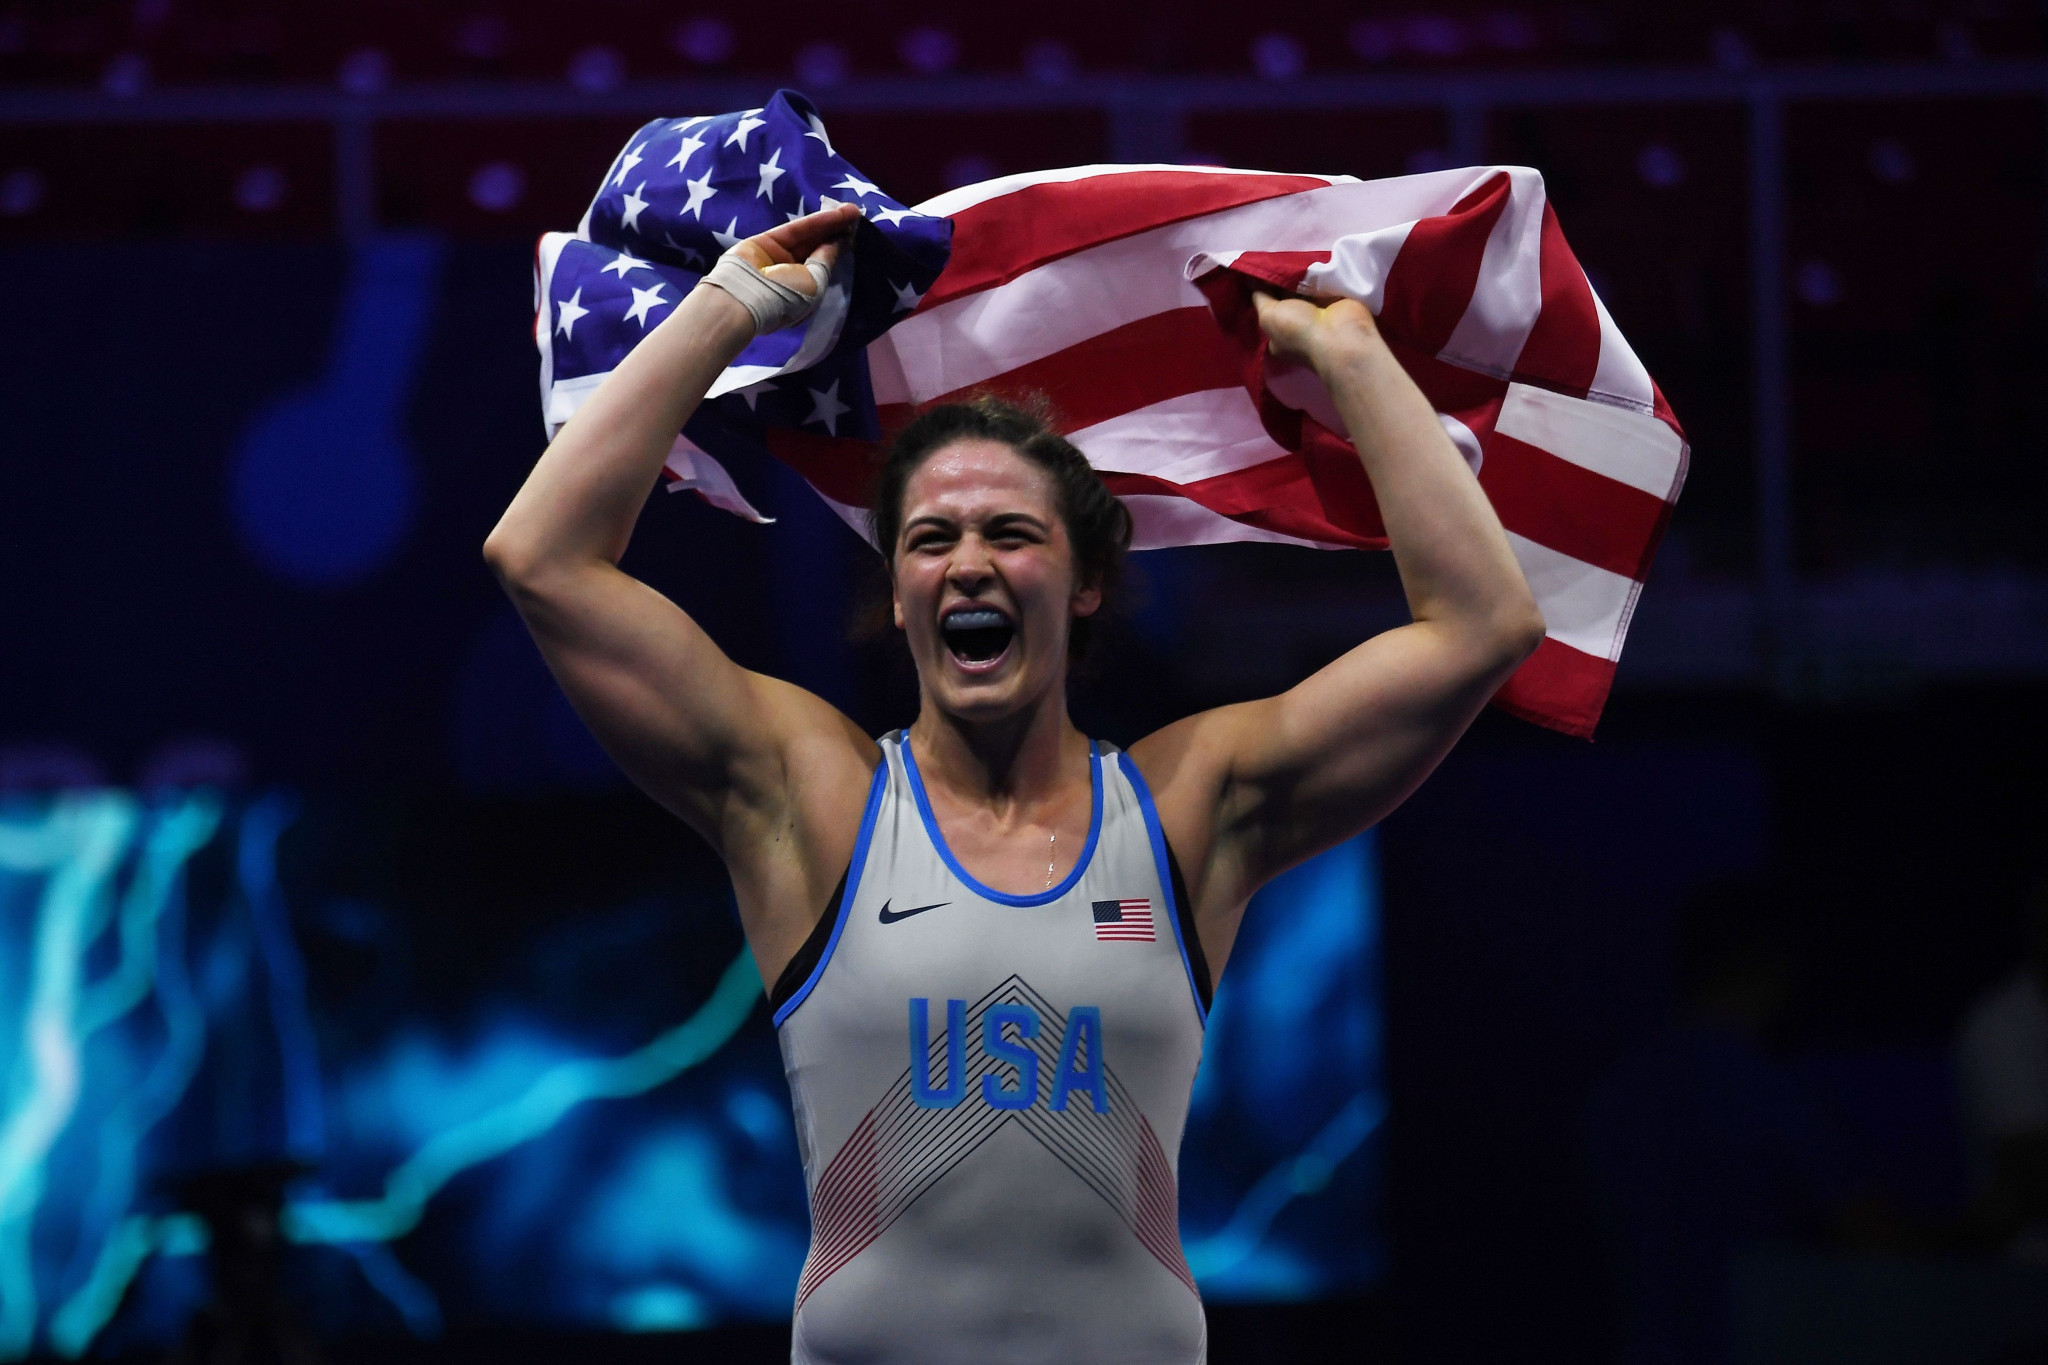 USA Wrestling opts out of World Championships in Belgrade over COVID-19 risk